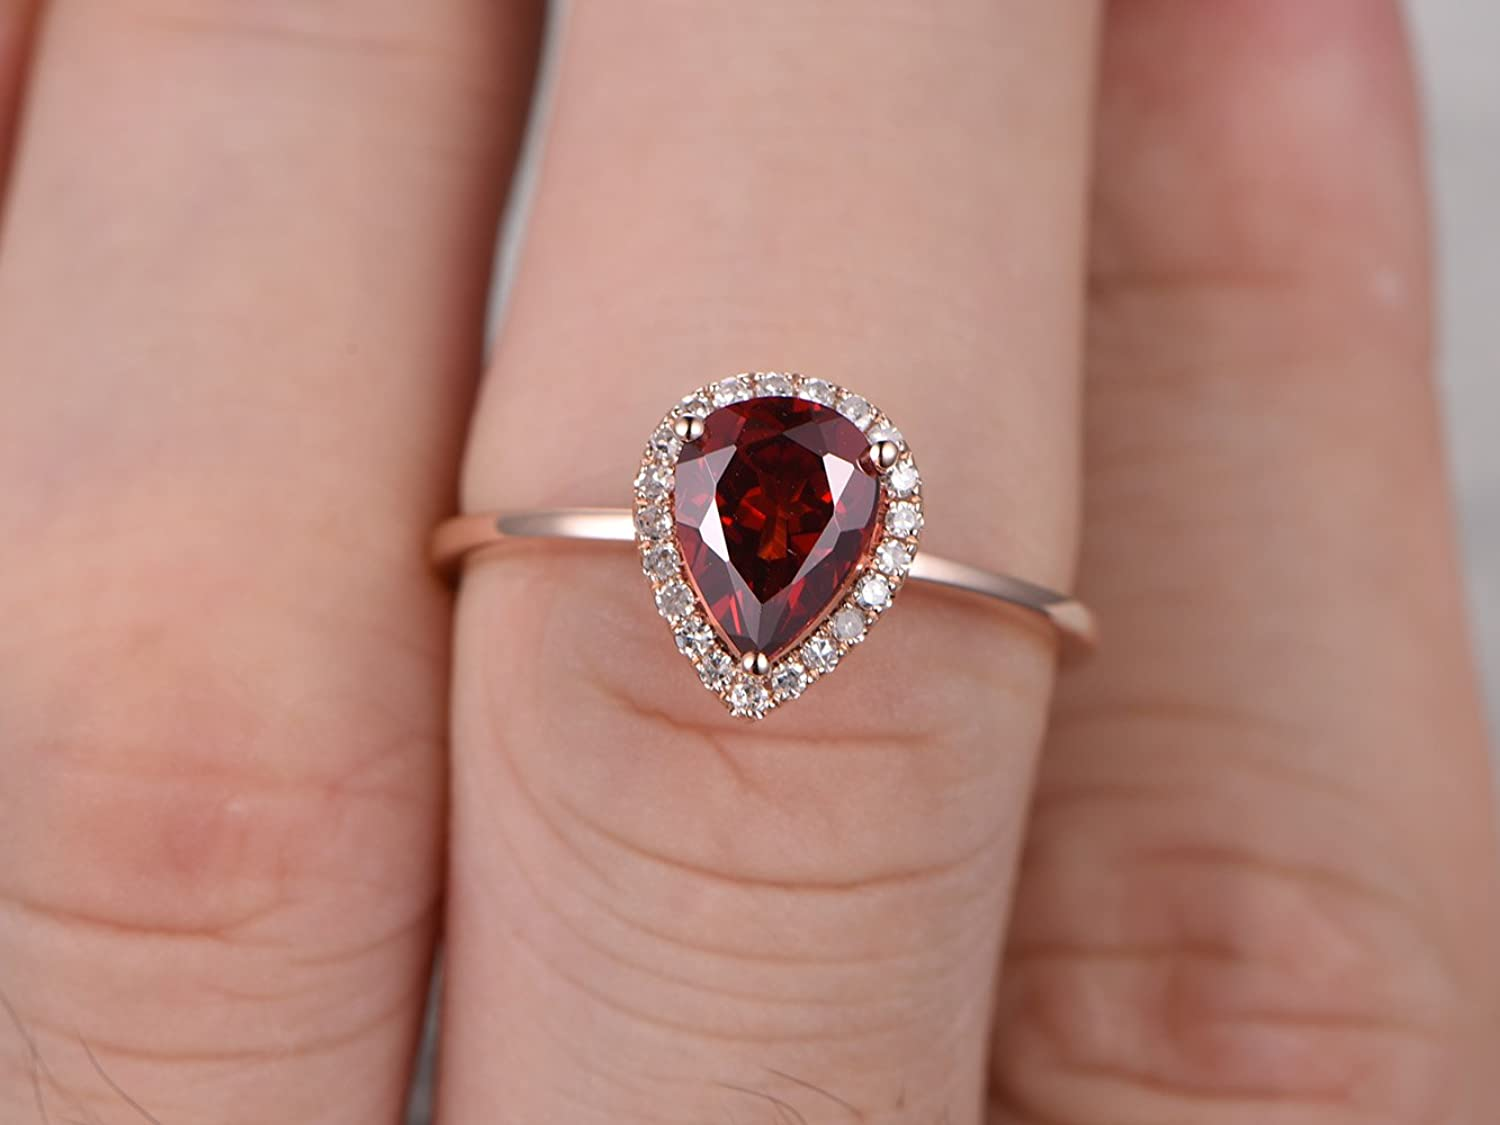 Amazon.com: Natural Red Garnet Engagement Ring Set,6x8mm Pear Cut ...